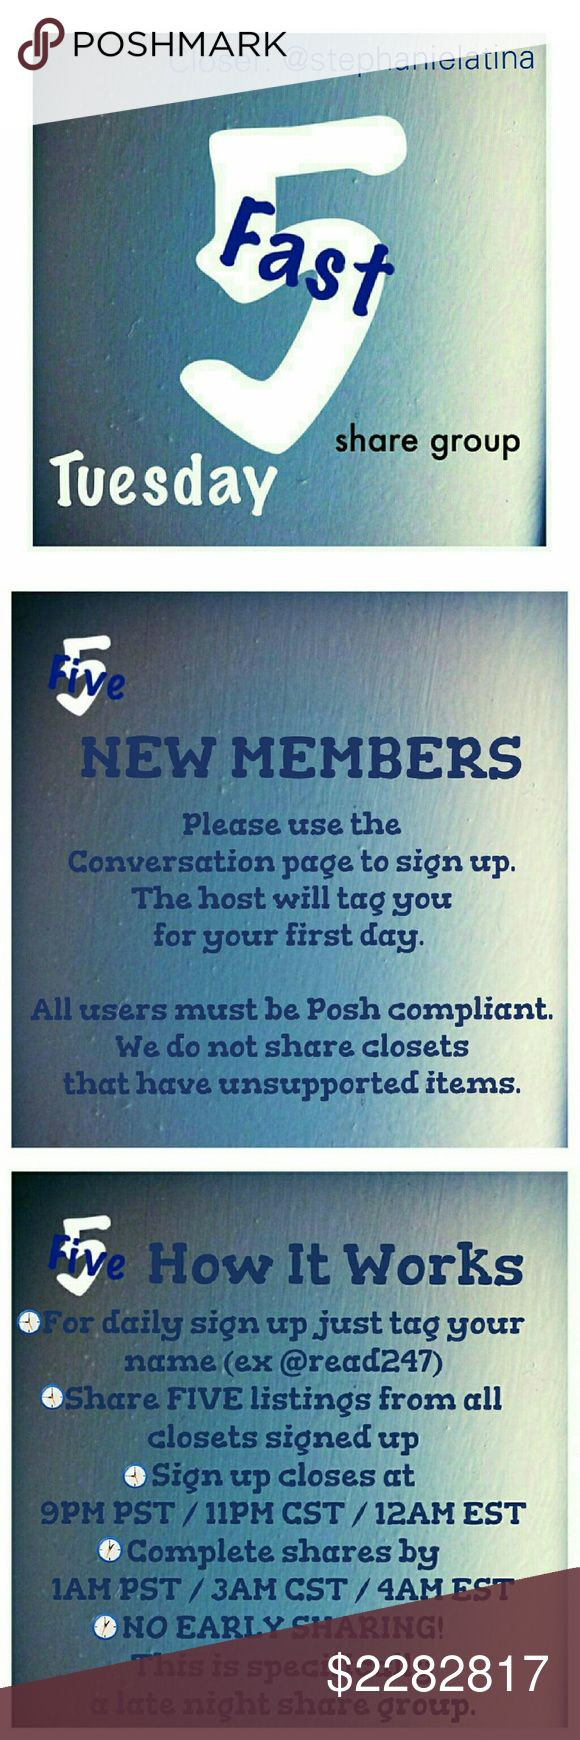 ⏳Tuesday, 2/28 - Fast 5 Share Group SignUp Sheet⌛ 🌃New group members please sign up on the Conversation page. 🌃POSH COMPLIANT CLOSETS ONLY! 🌃If you have any ?s please use the conversation page. 🌃Share FIVE available listings. 🌃Sign up is open until 9PM PST /11PM CST /12AM EST 🌃You have until 1AM PST /3AM CST /4AM EST to finish sharing. 🌃NO EARLY SHARING! This group was created specifically for sharing at night. 🌃THIS IS THE DAILY SIGN UP SHEET! 🌃PLEASE BE SURE TO LIKE THE…